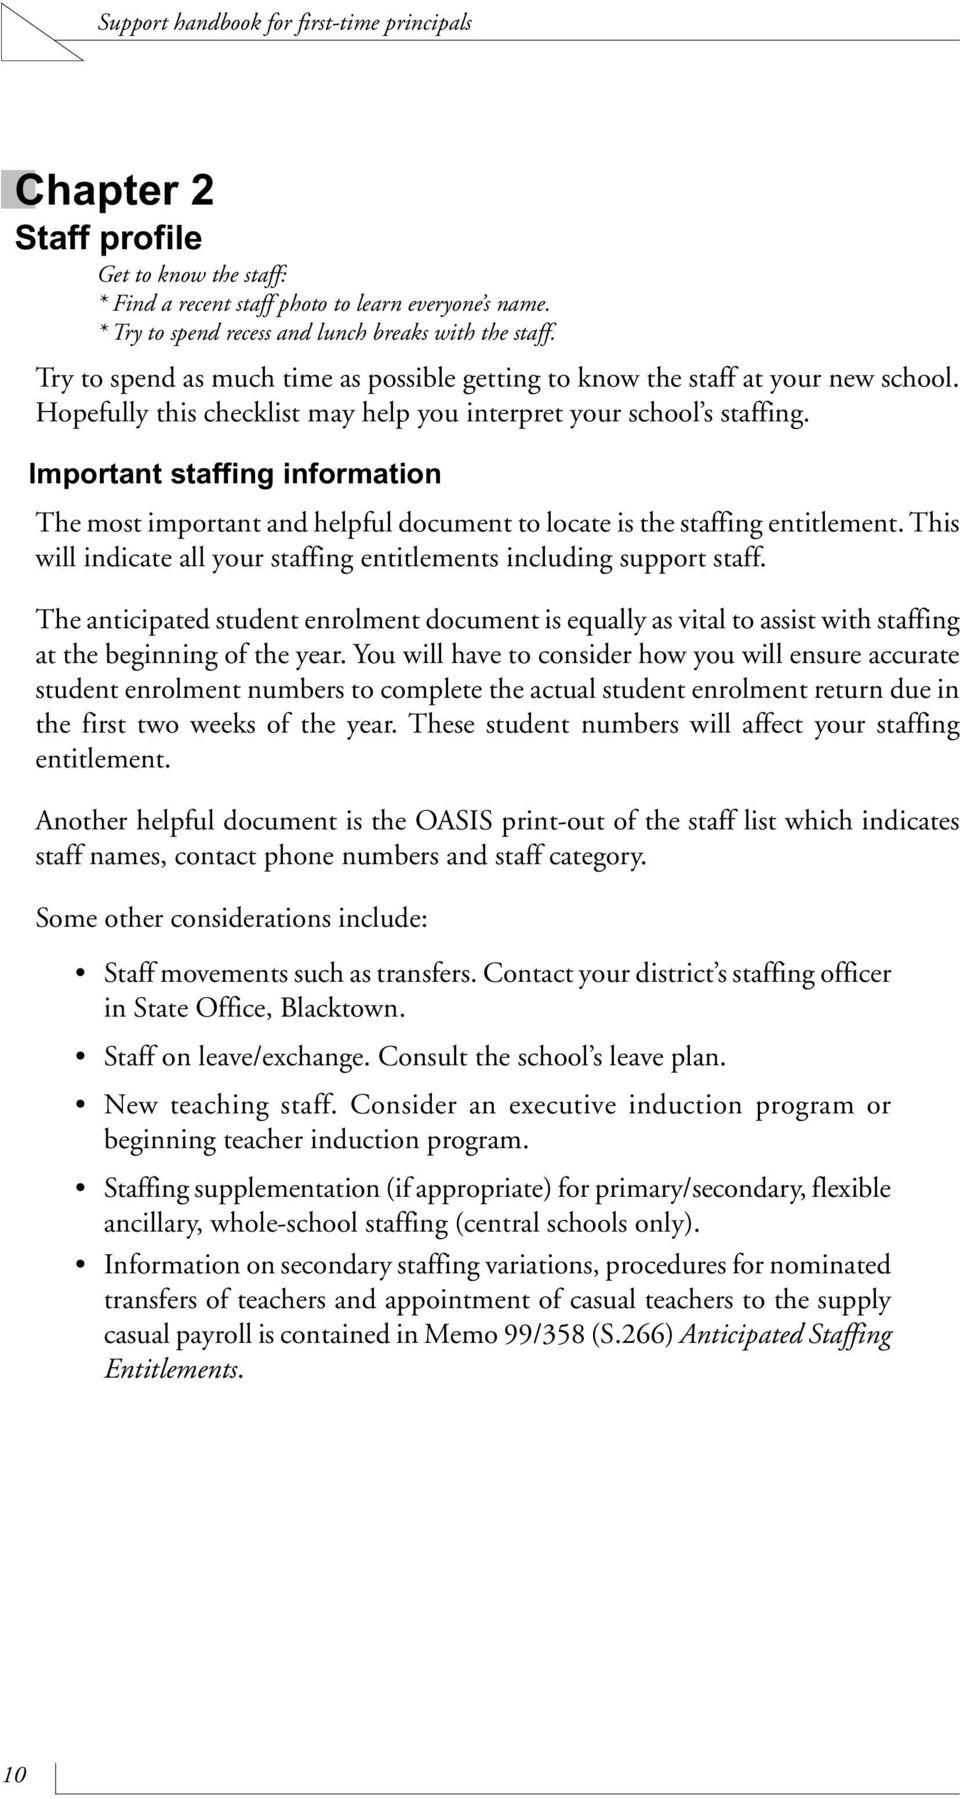 Important staffing information The most important and helpful document to locate is the staffing entitlement. This will indicate all your staffing entitlements including support staff.